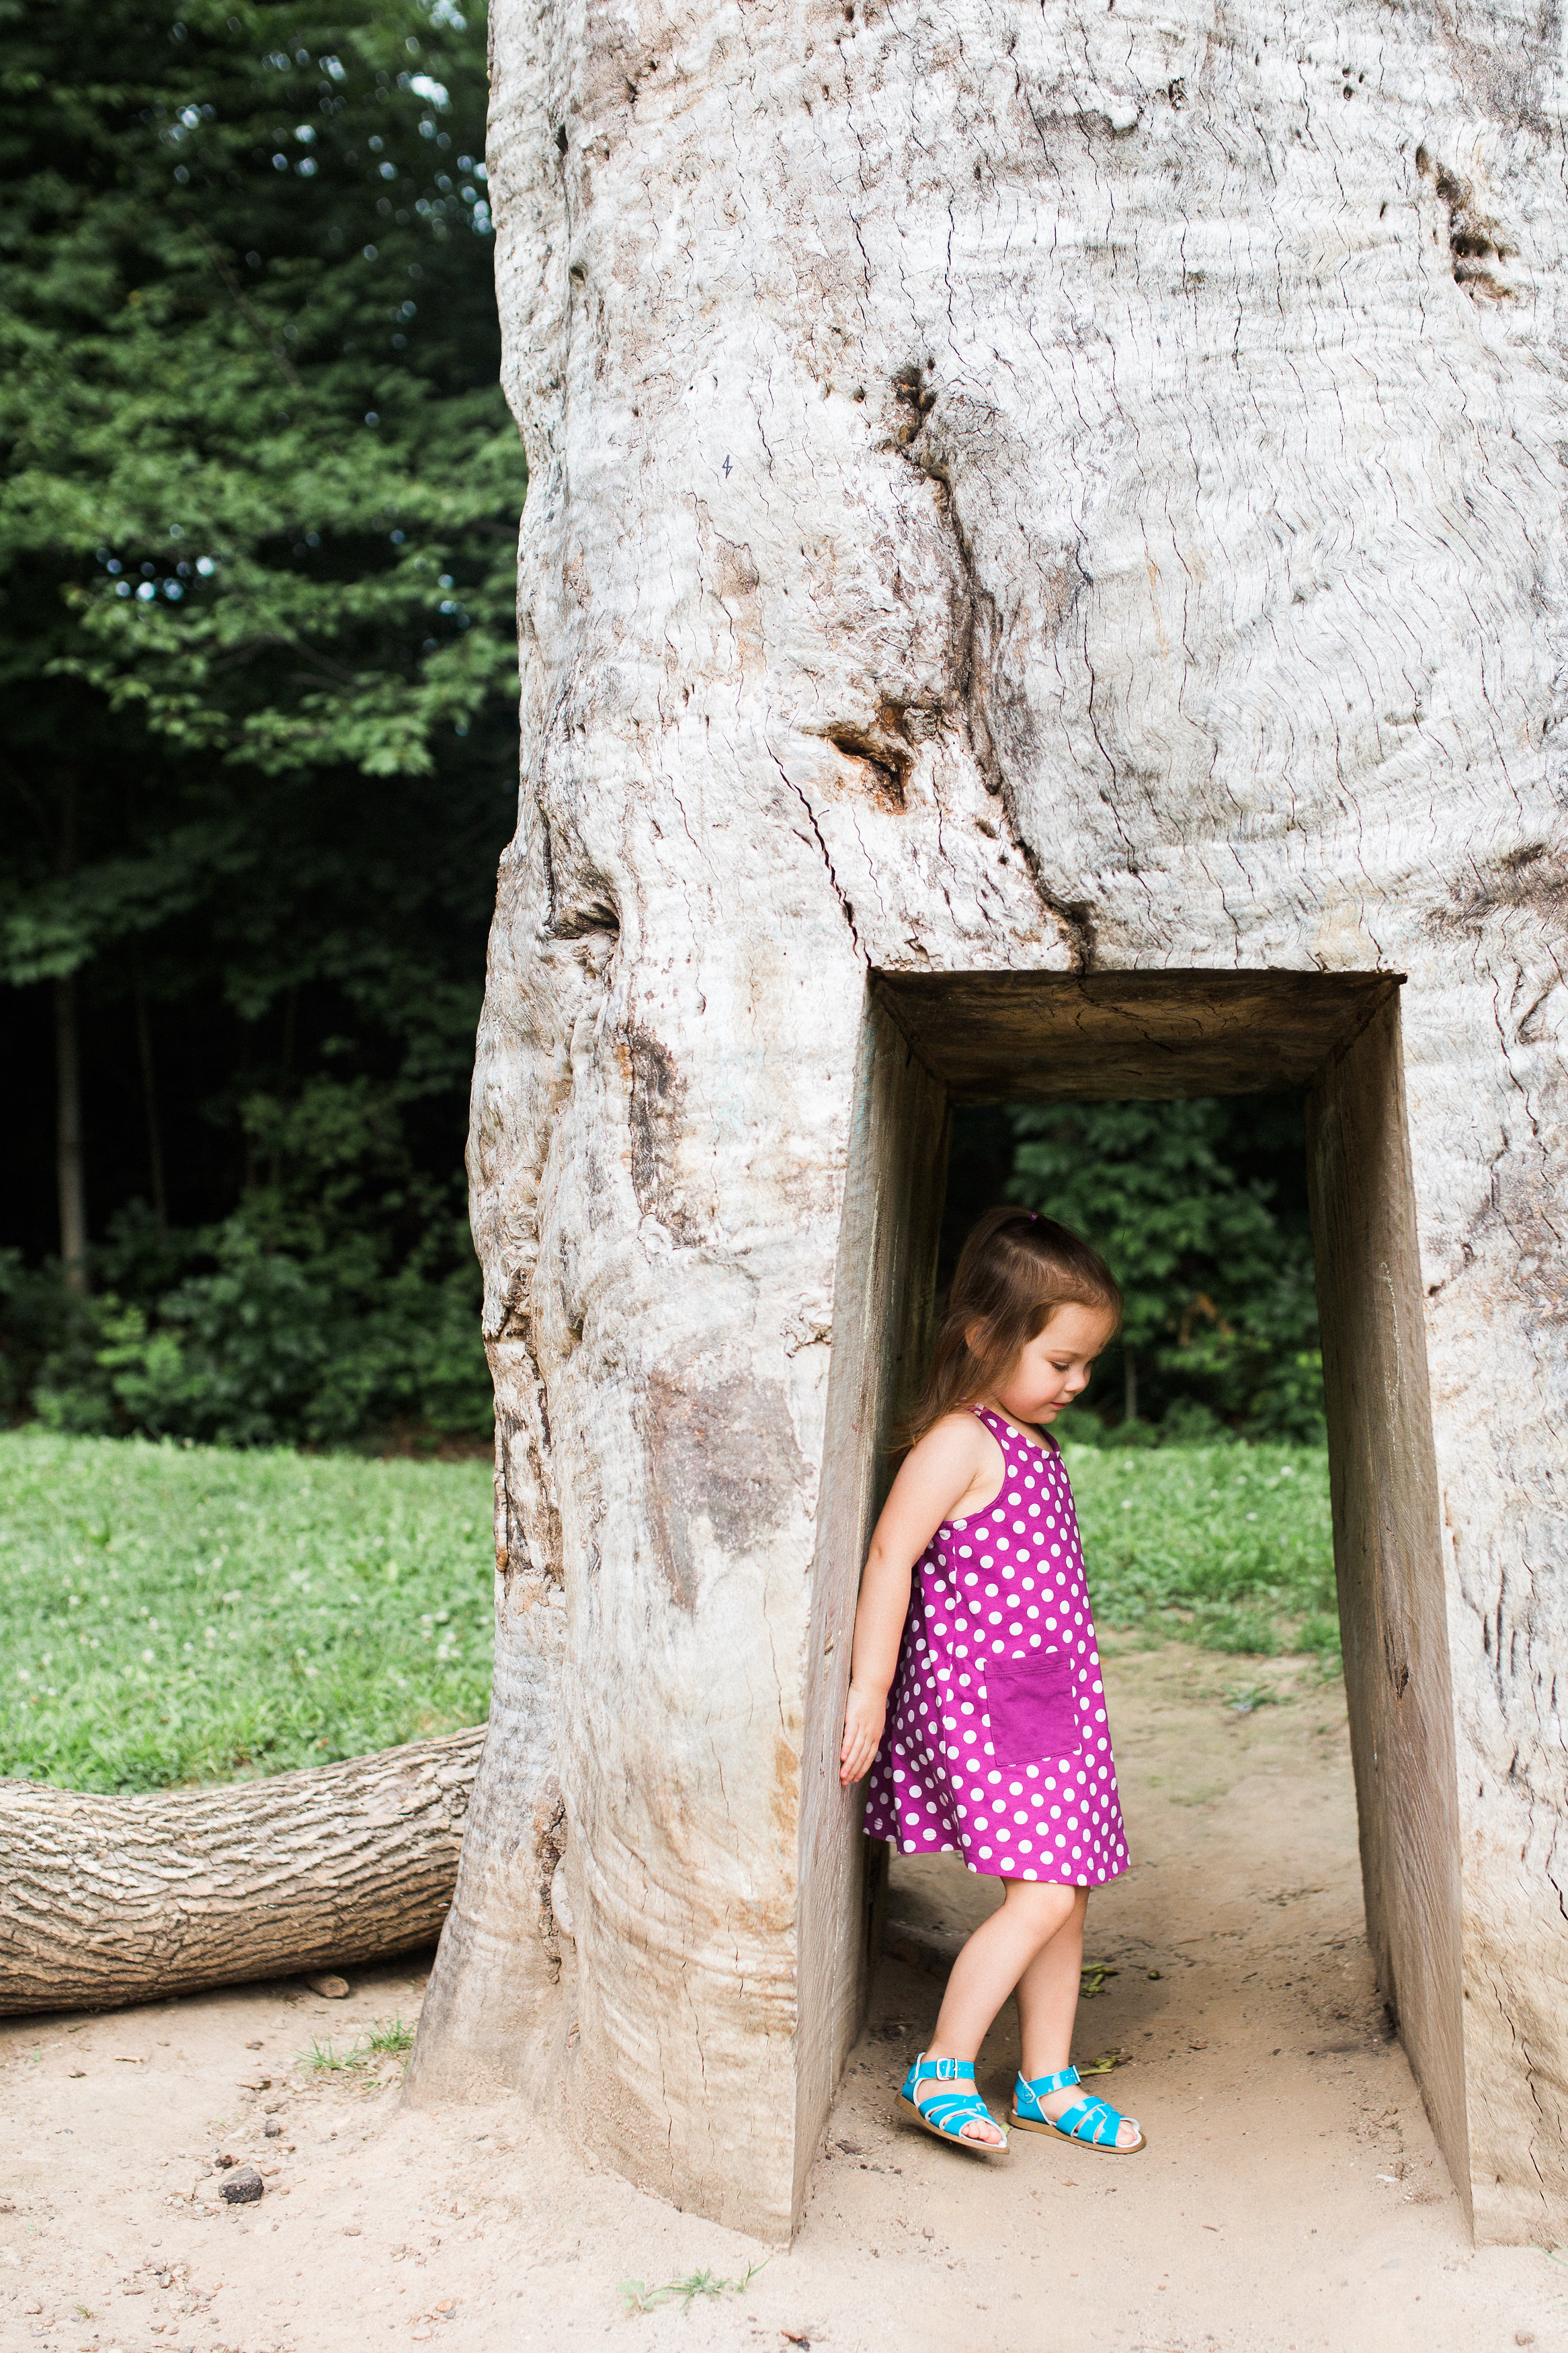 prospect-park-family-photography_natural-playground-14.jpg